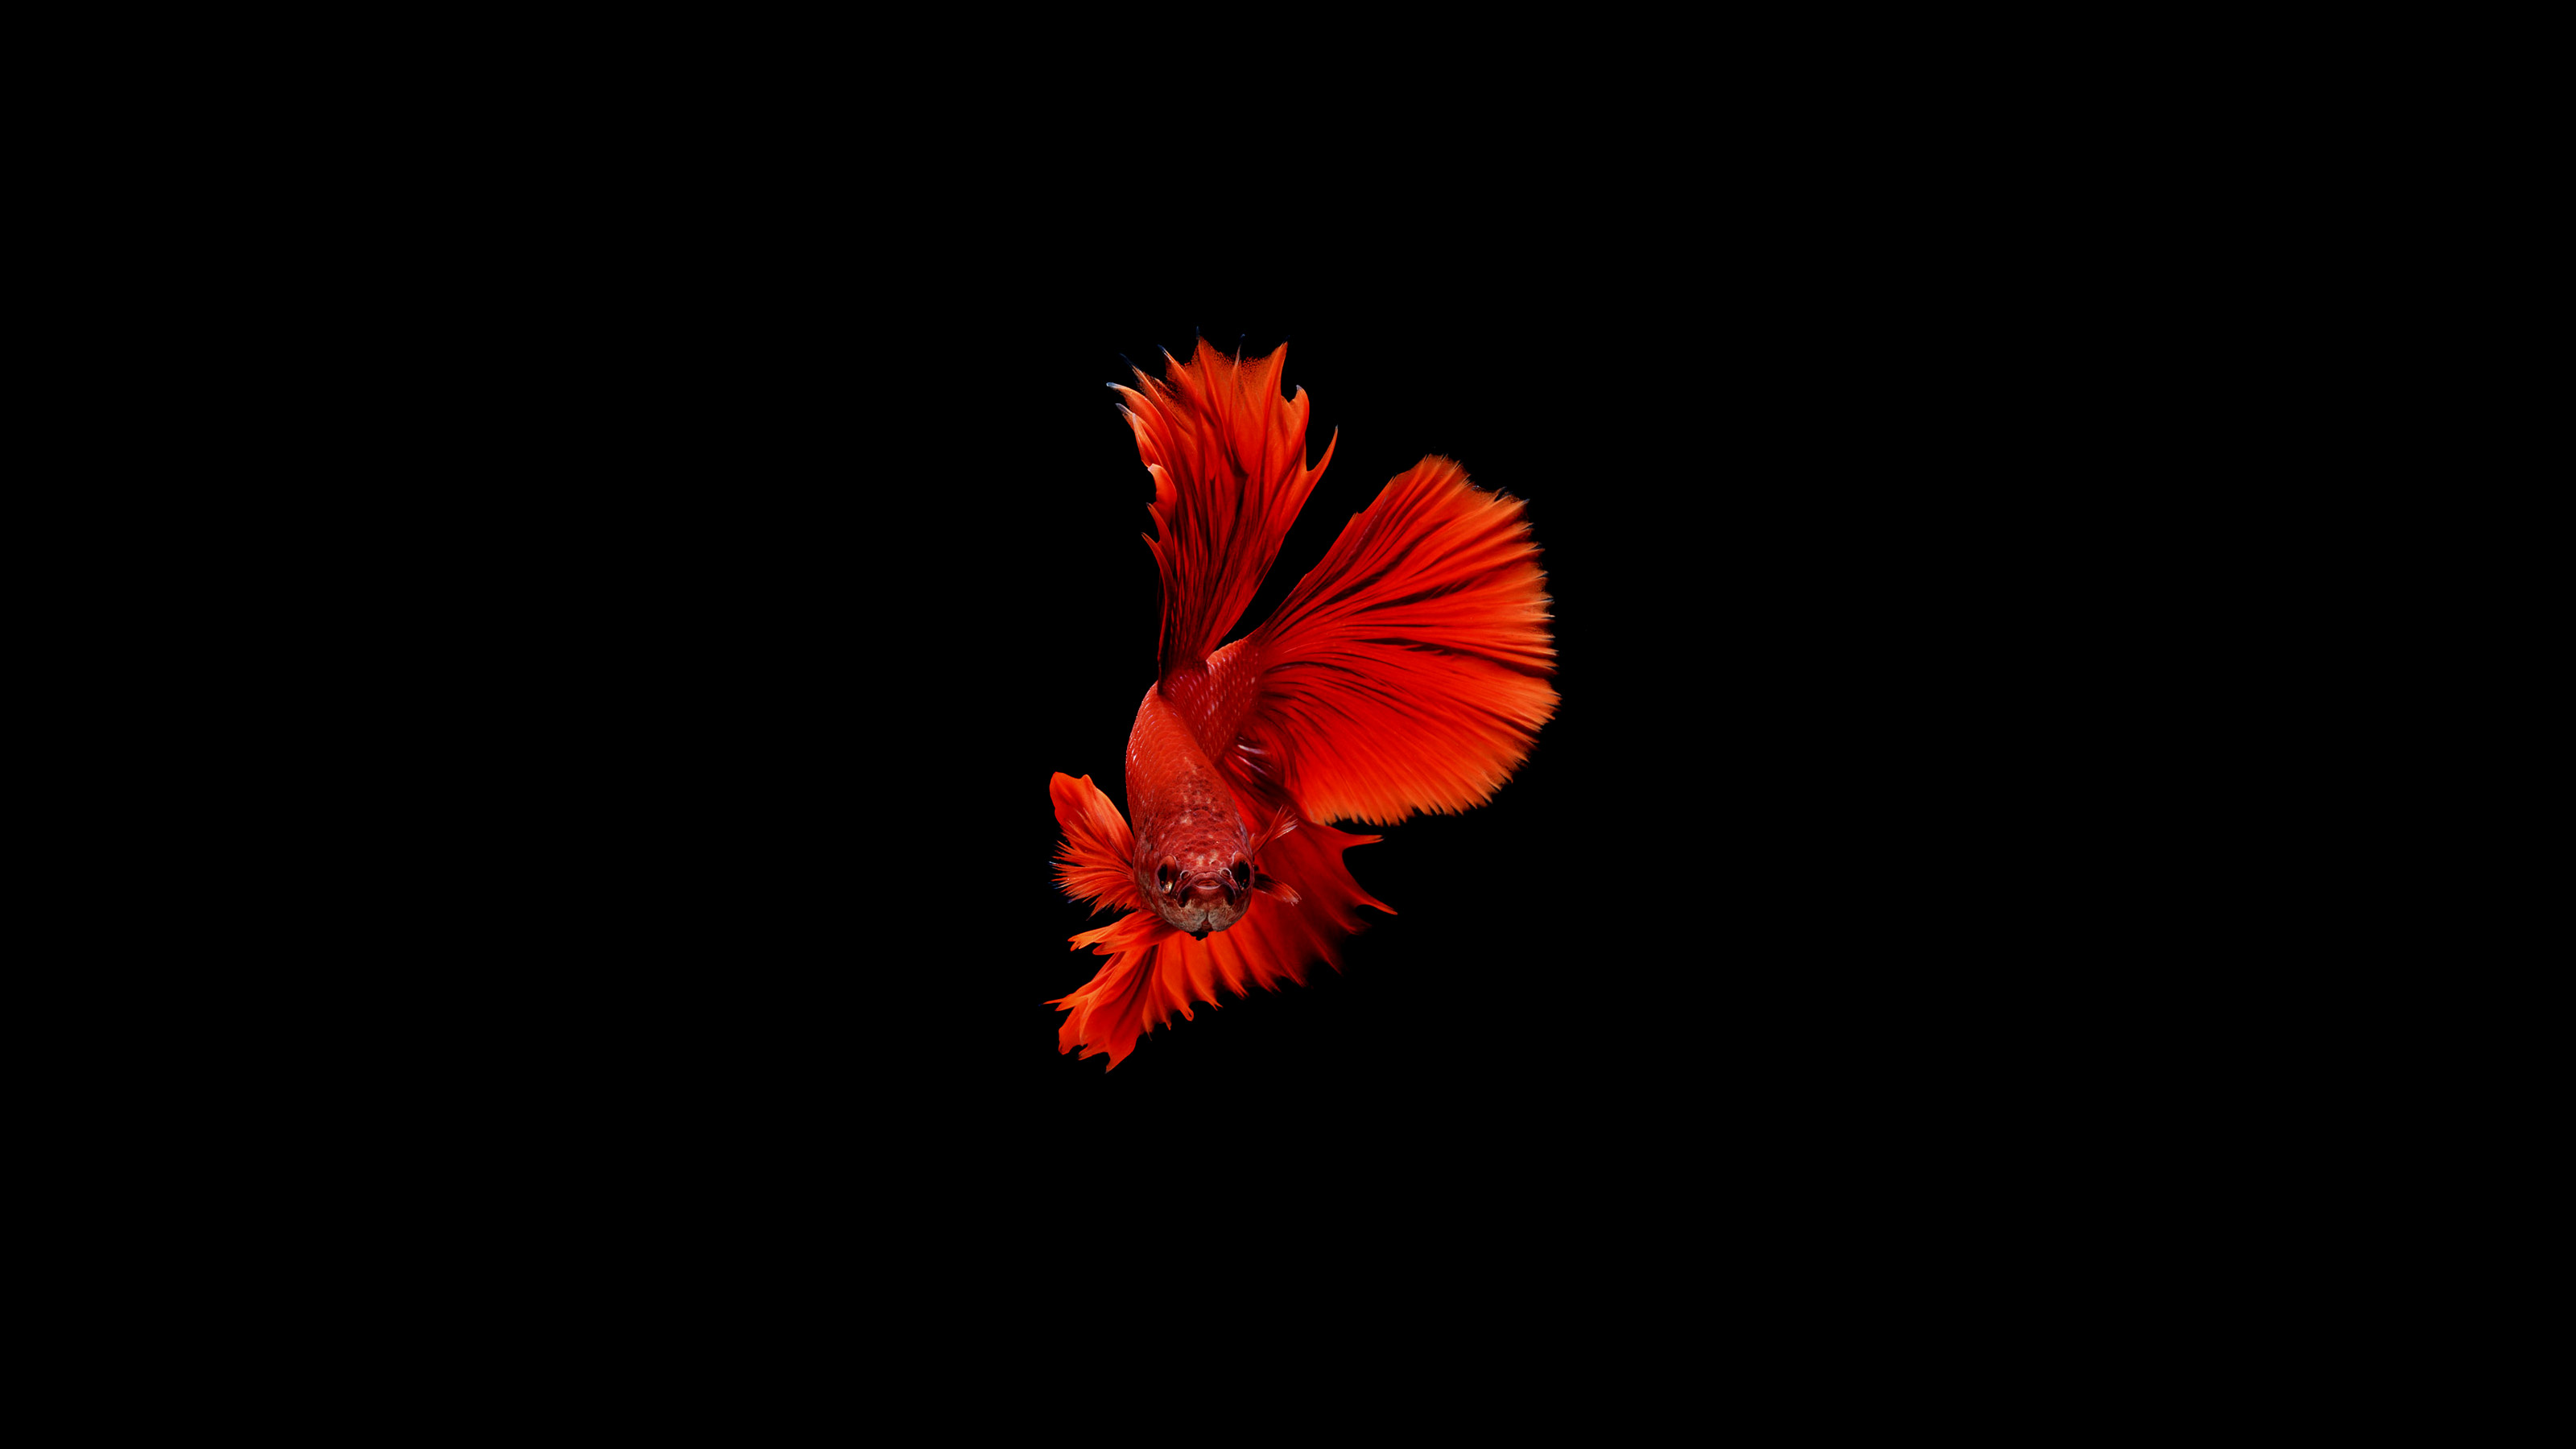 1920x1080 betta fish laptop full hd 1080p hd 4k wallpapers, imagespublished on may 29, 2017 original resolution